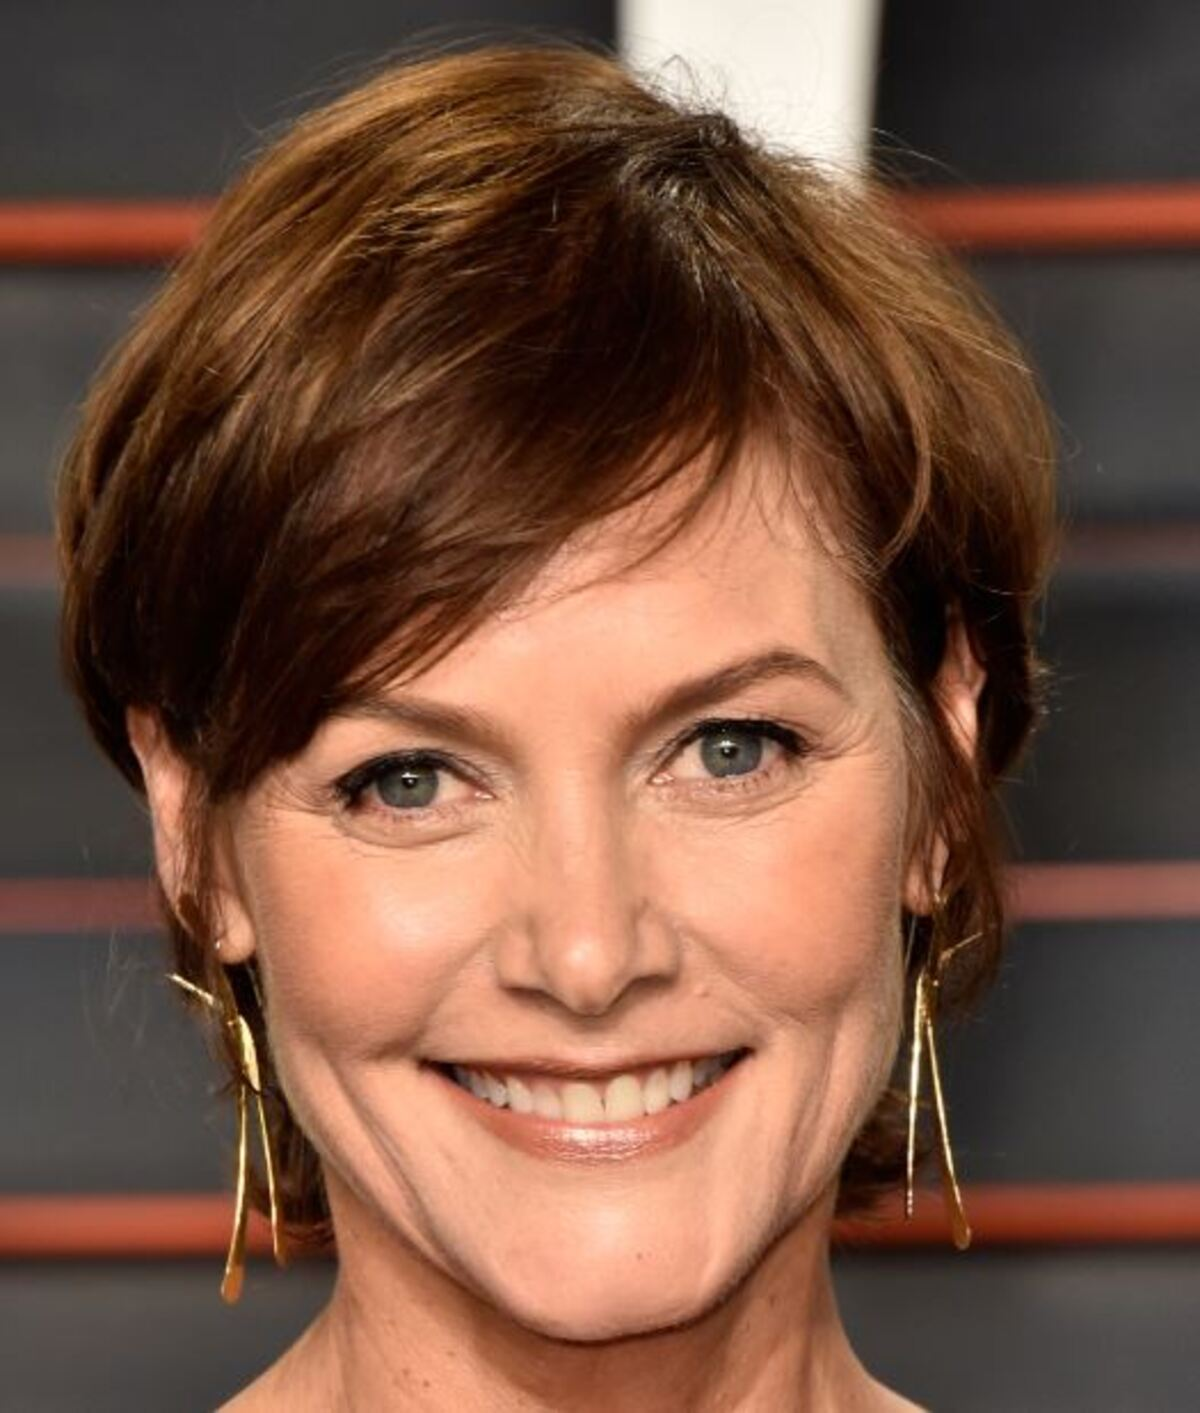 carey lowell imagescarey lowell young, carey lowell griffin dunne, carey lowell instagram, carey lowell now, carey lowell, carey lowell 2018, carey lowell law and order, carey lowell son, carey lowell age, carey lowell height, carey lowell richard gere, carey lowell wiki, carey lowell imdb, carey lowell james bond, carey lowell 2017, carey lowell daughter, carey lowell sleepless in seattle, carey lowell biography, carey lowell net worth, carey lowell images